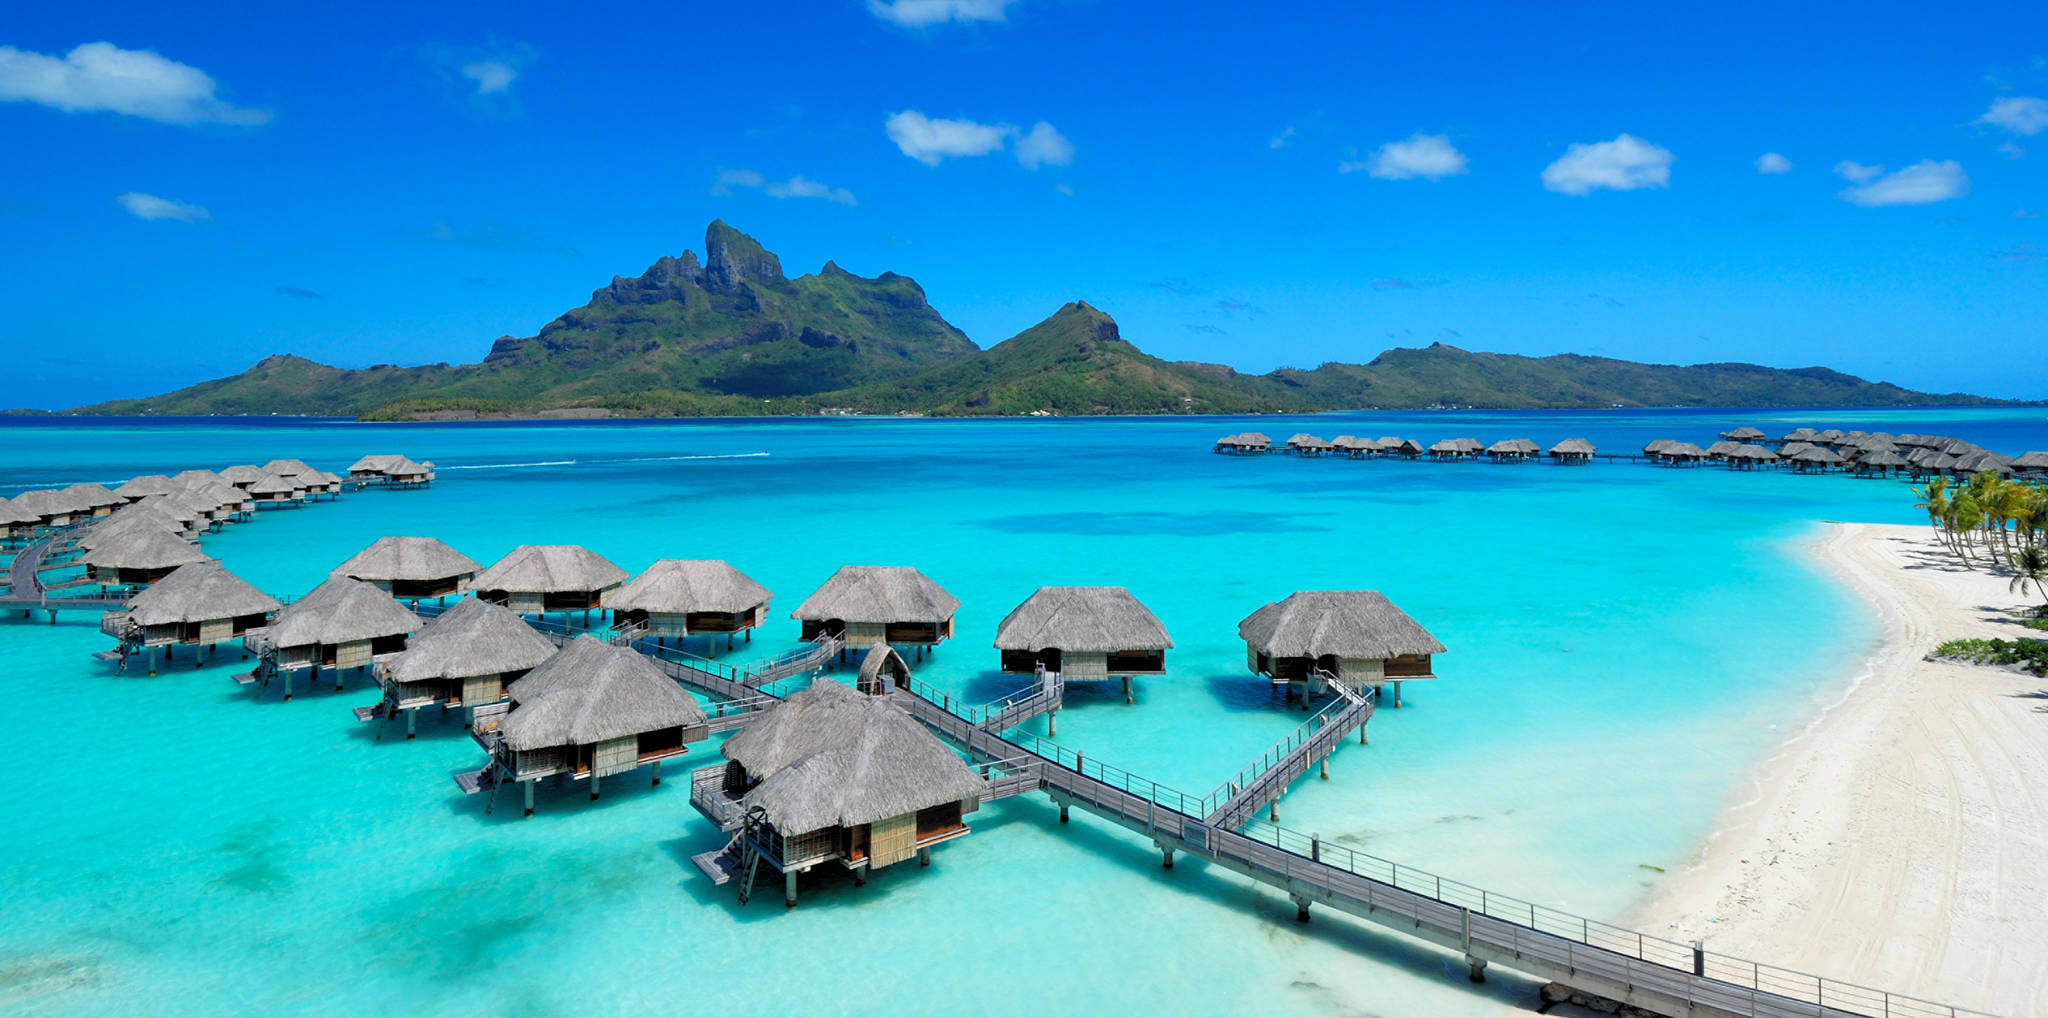 Four Seasons, Bora Bora, French Polynesia